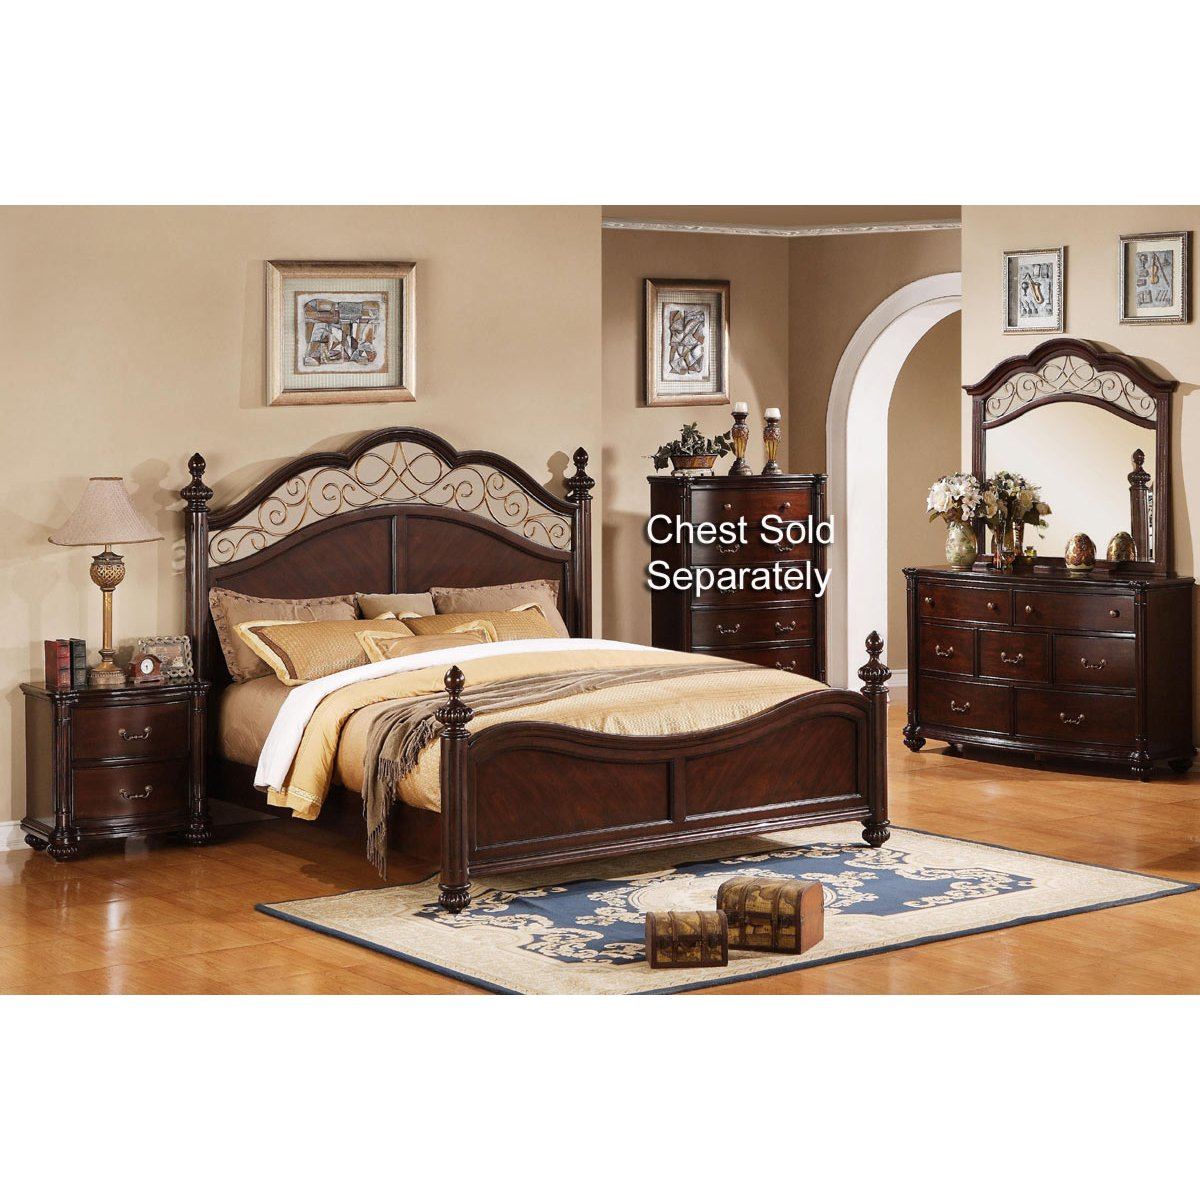 Derbyshire international furniture 6 piece queen bedroom set for Furniture queen bedroom sets